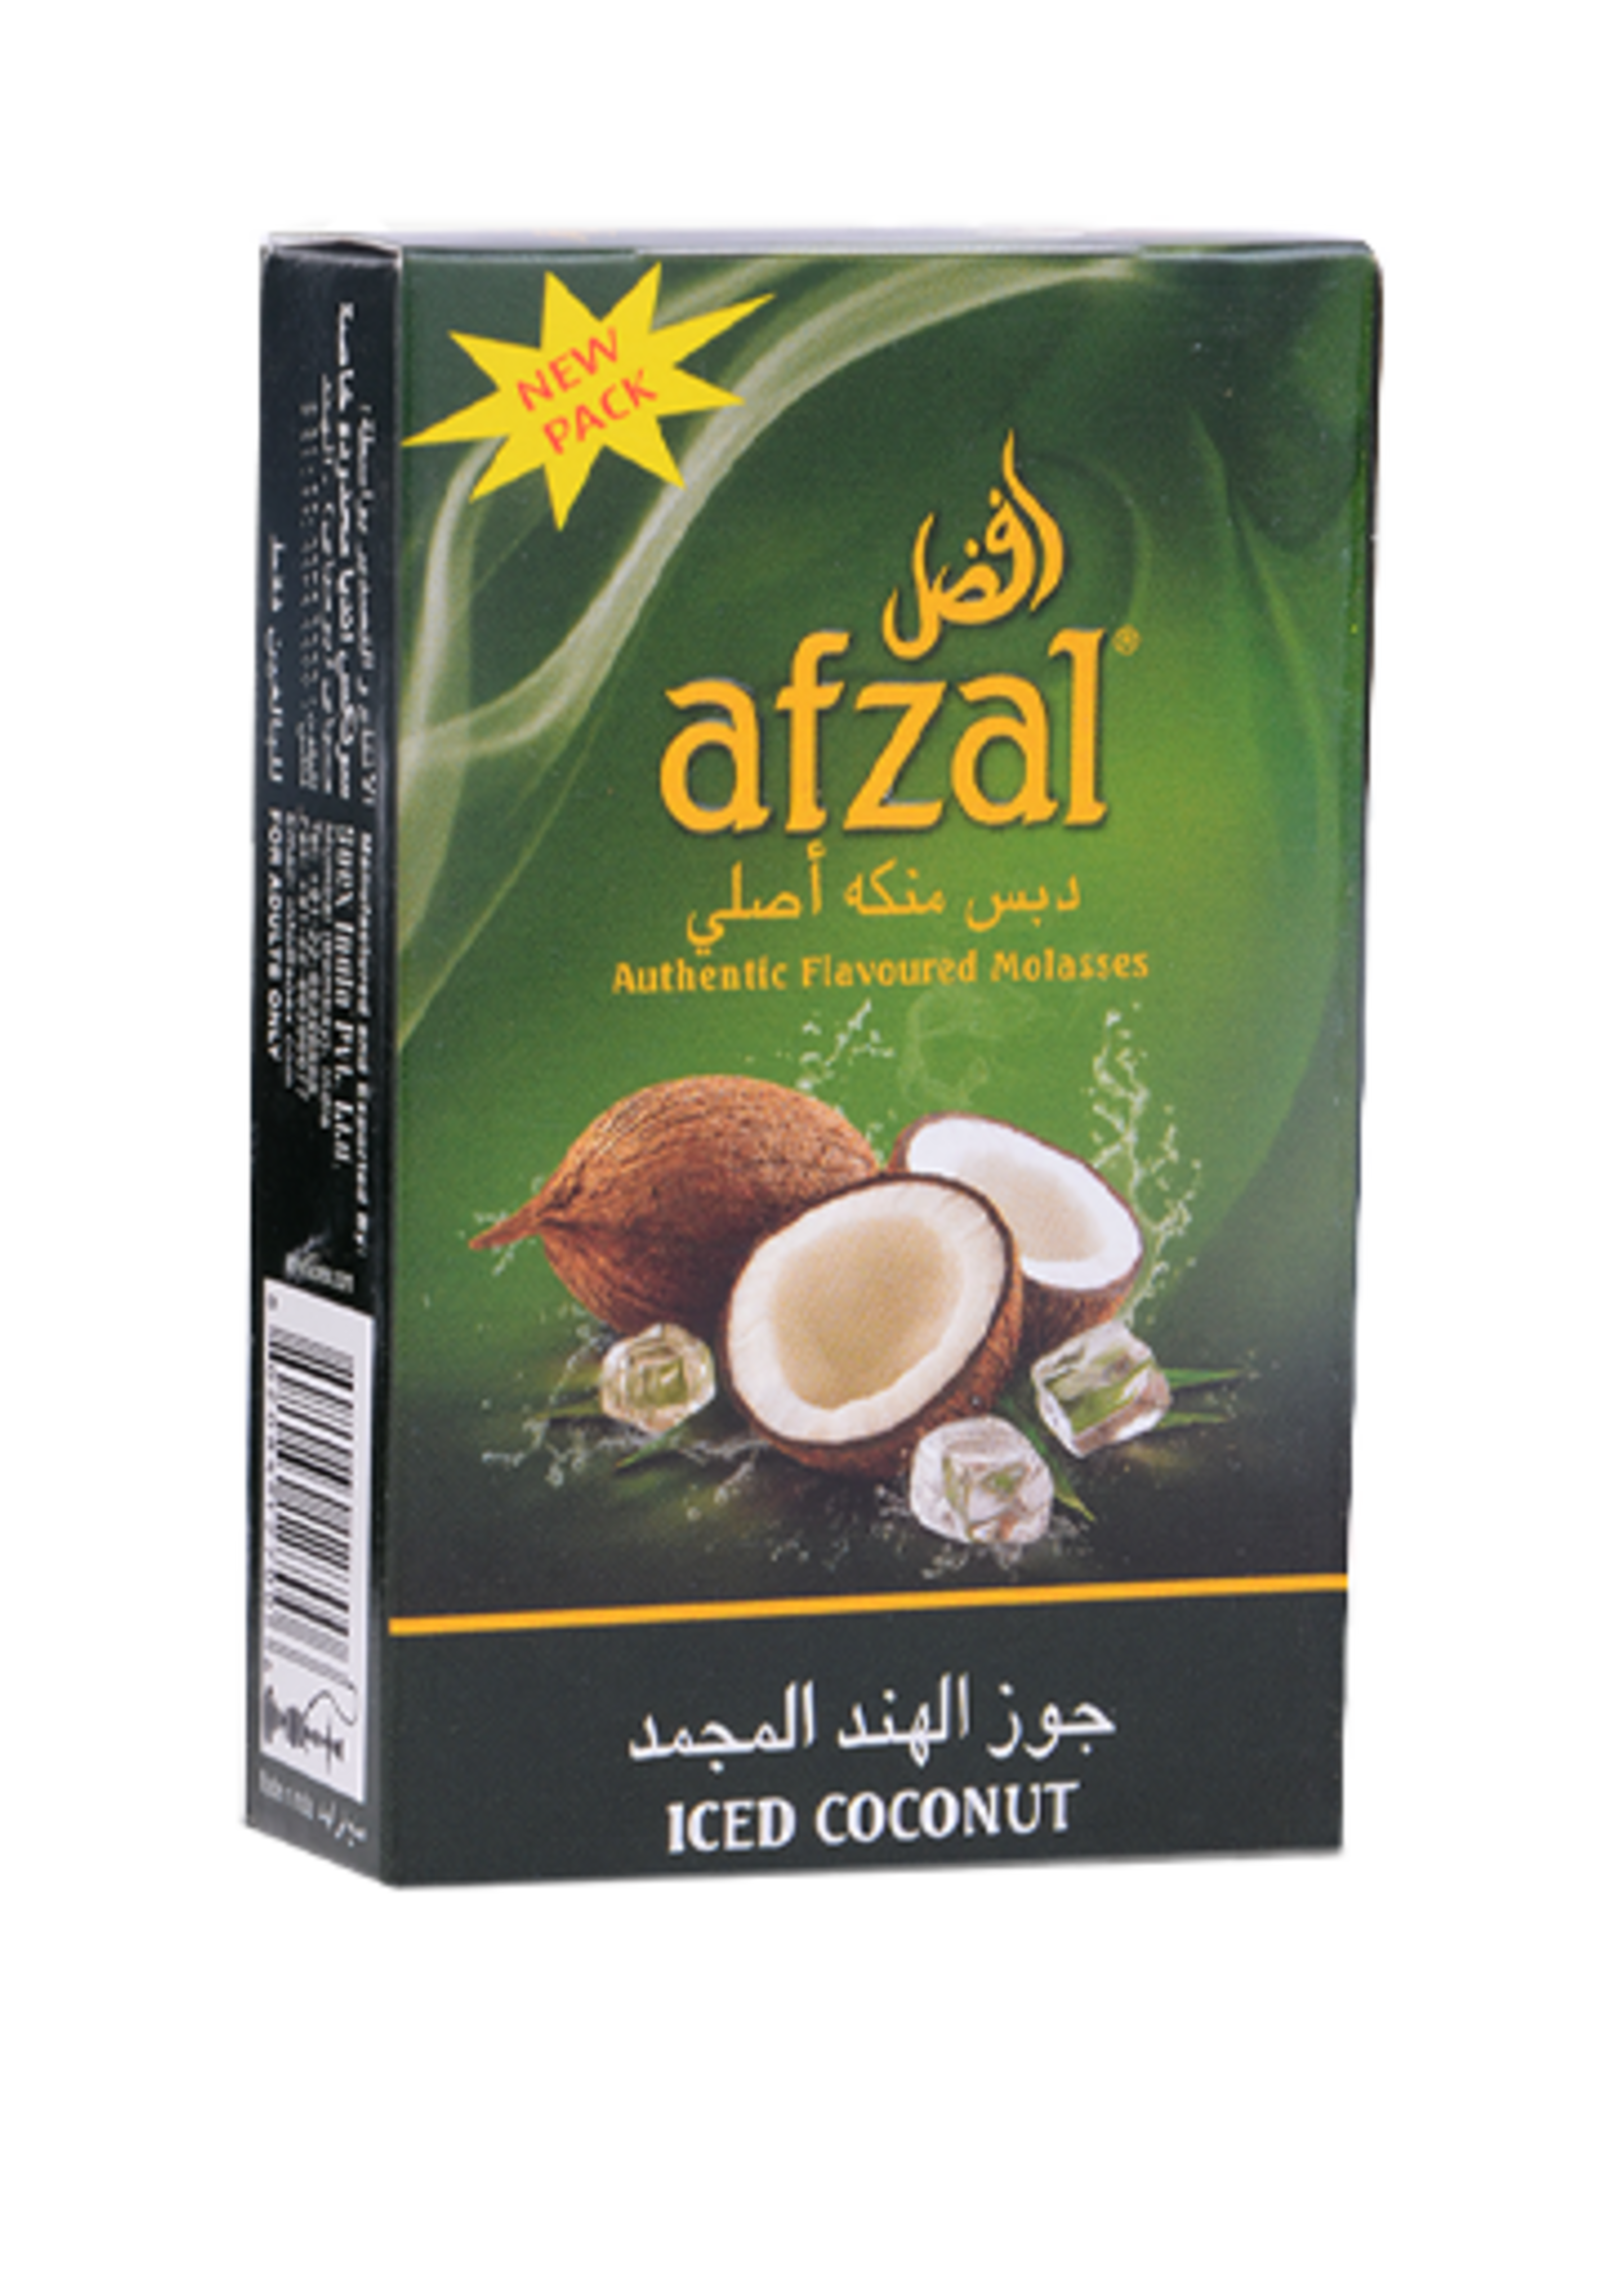 Afzal hubbly flavour - iced coconut